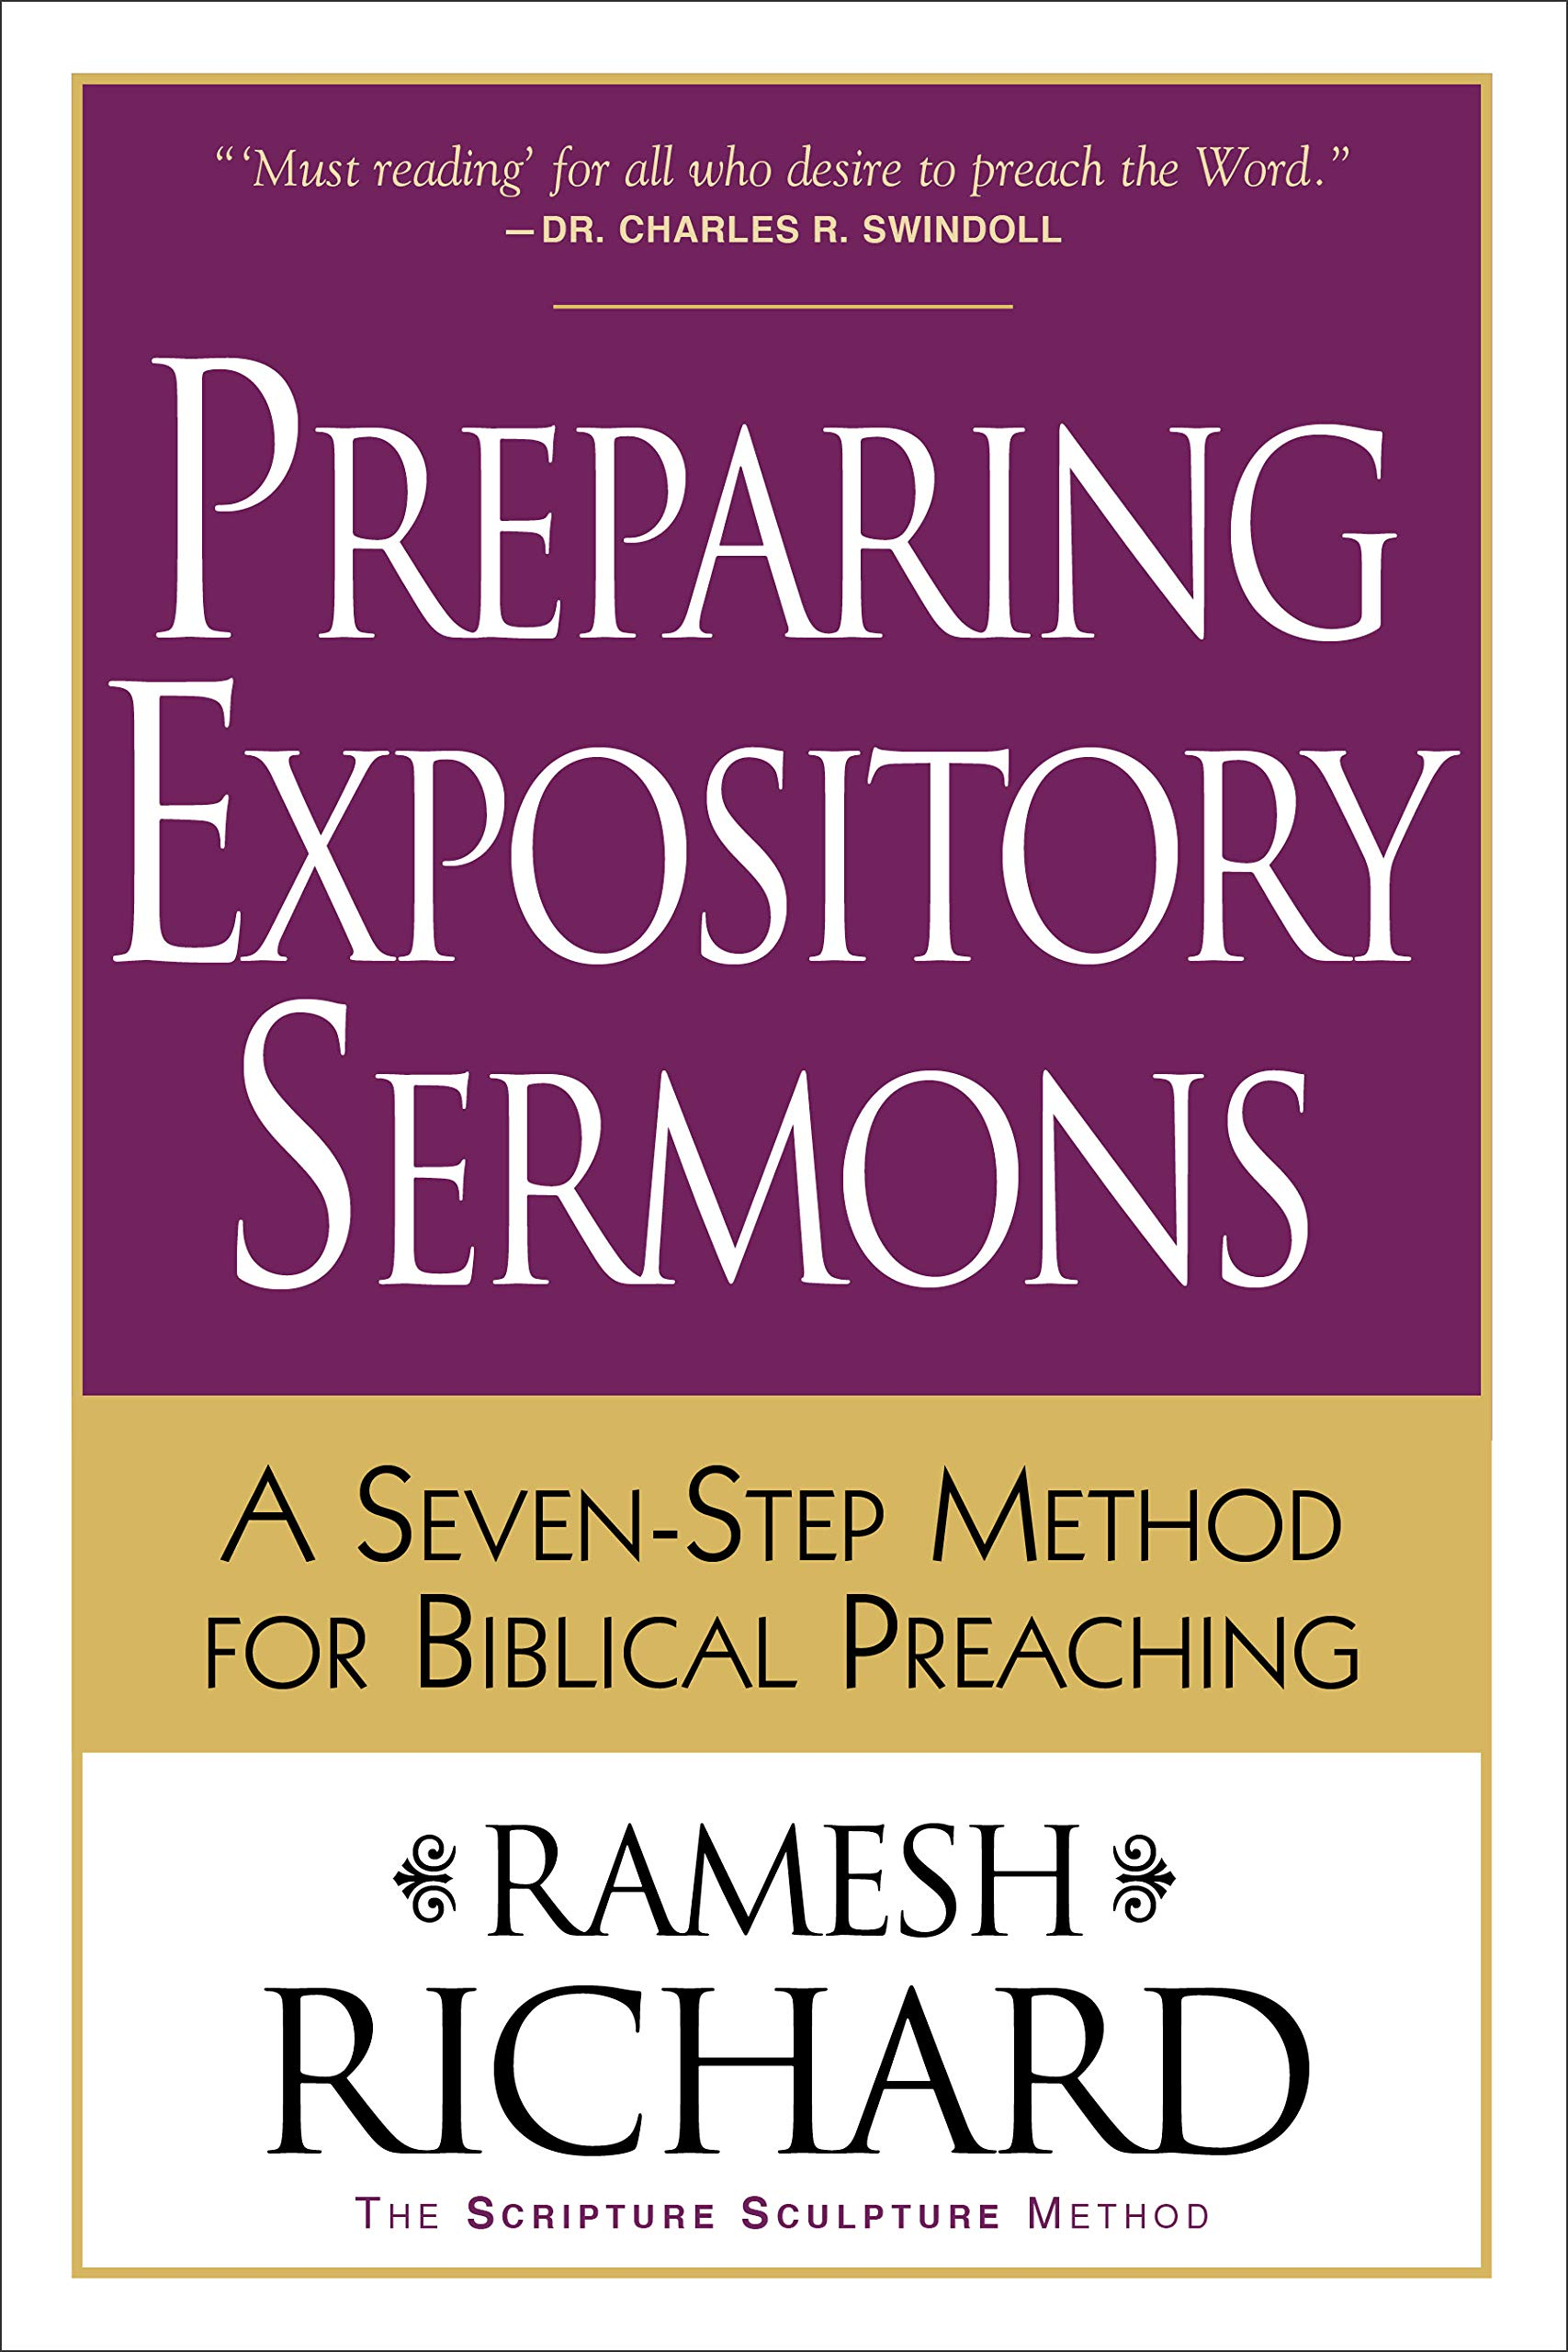 Preparing Expository Sermons: A Seven-Step Method for Biblical